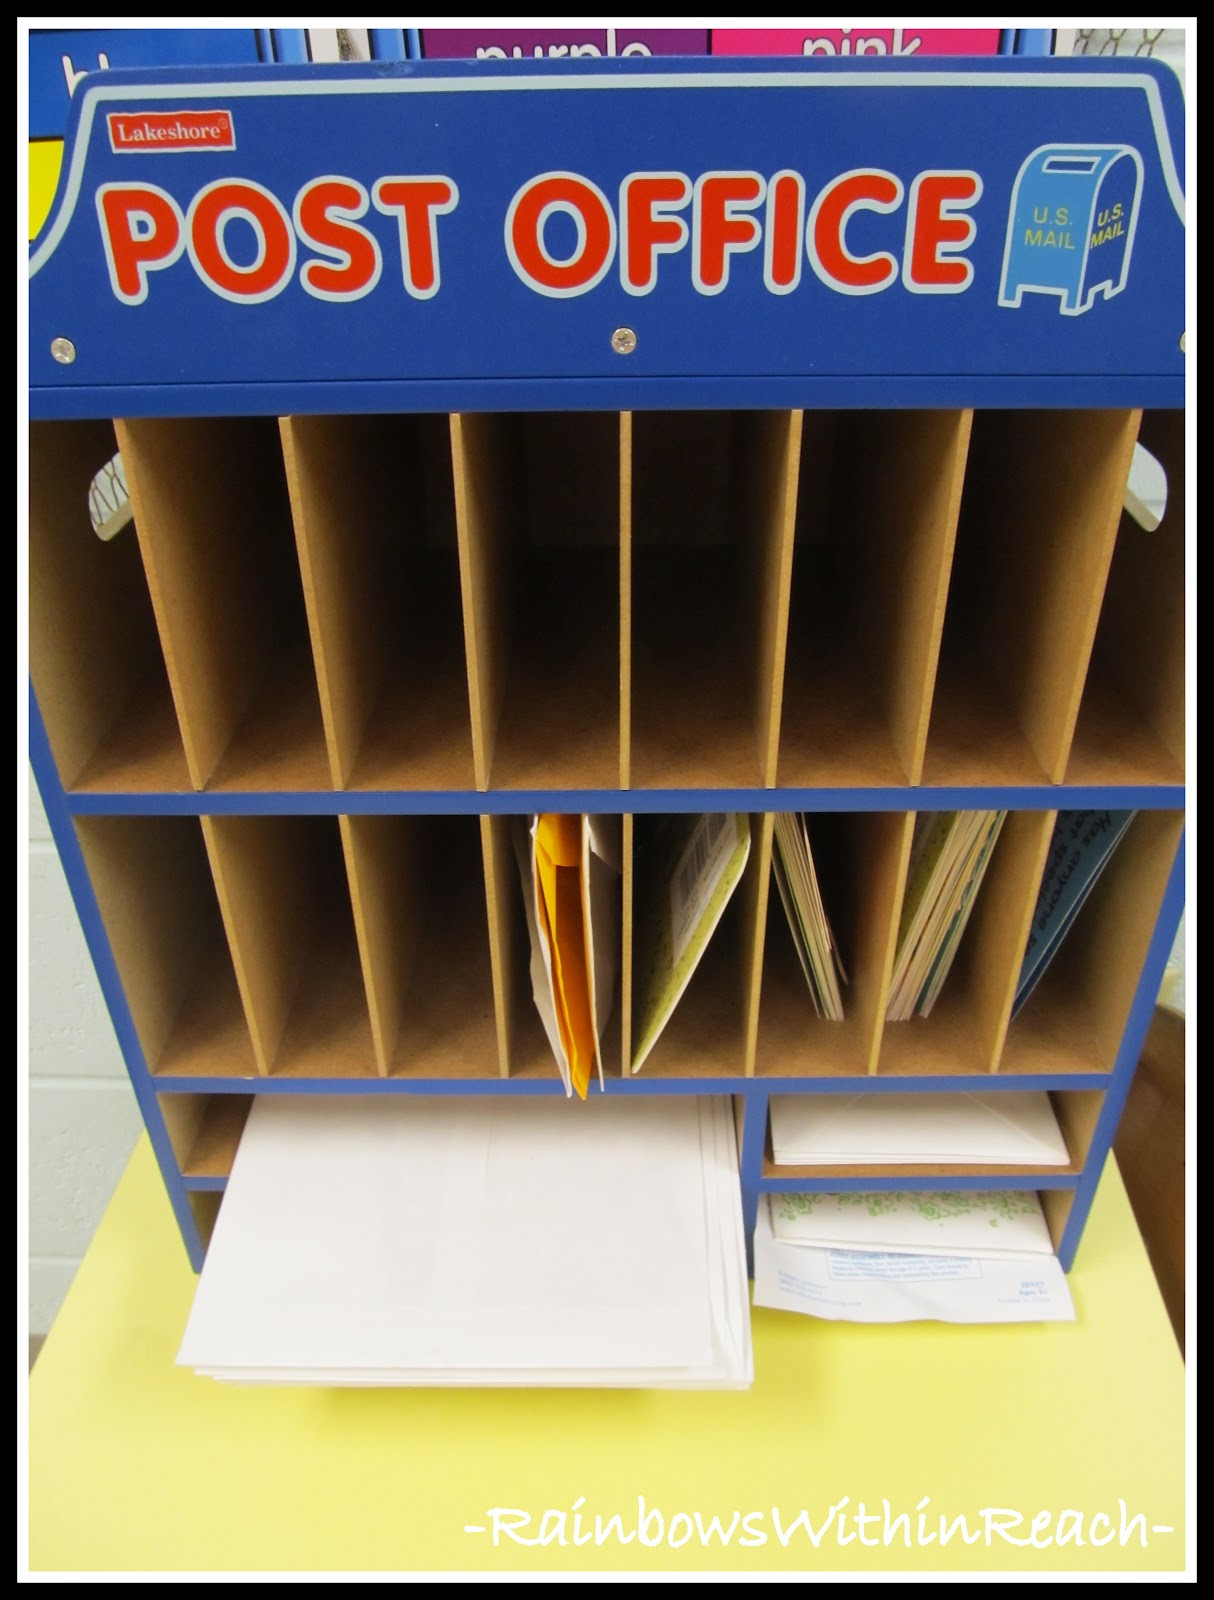 essay about the post office The post office ltd in united kingdom, a subsidiary of royal mail group ltd, attained its separated identity in 1987 post office in uk is quite famous.